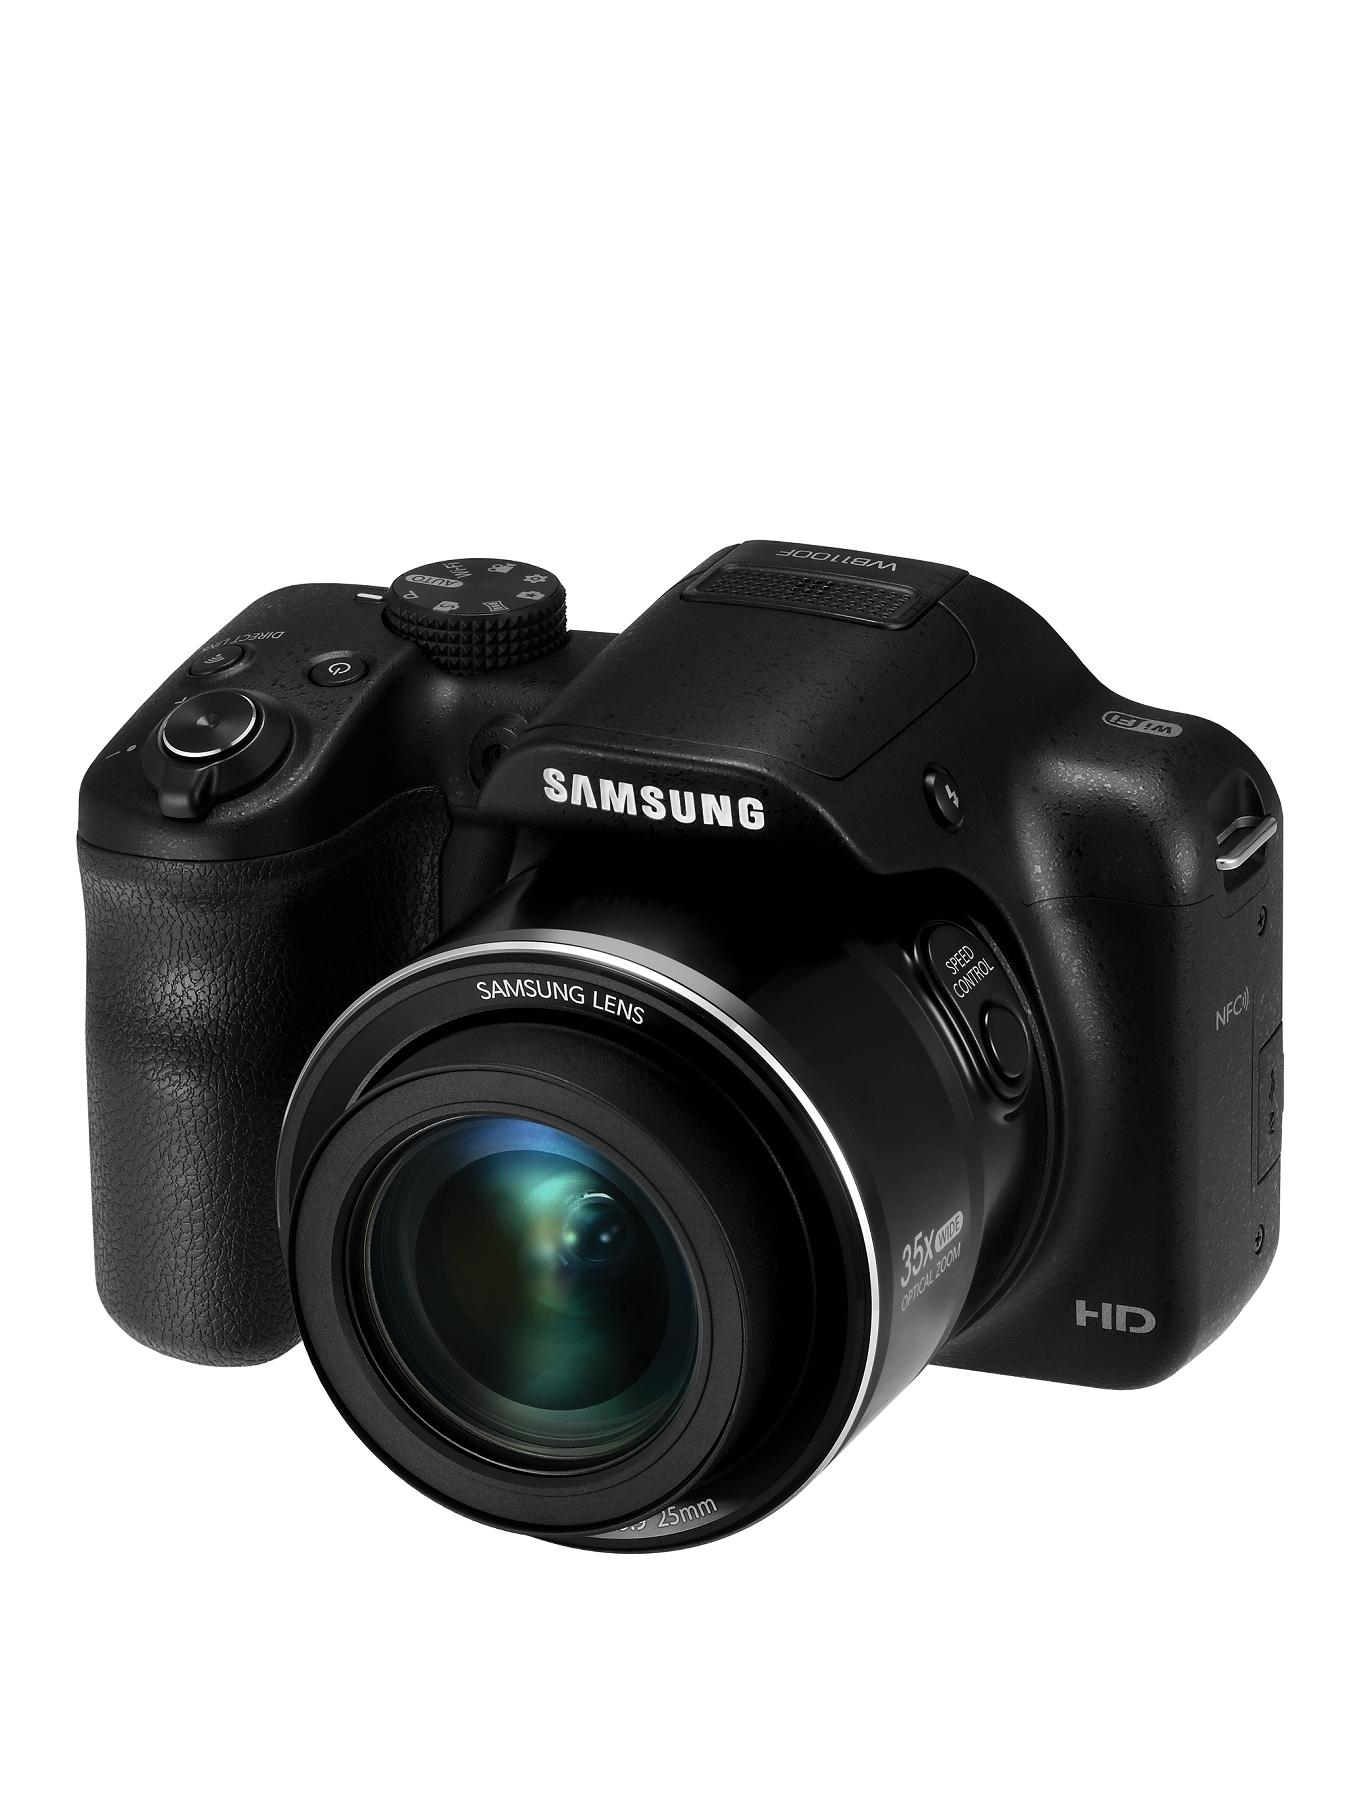 WB1100F 16.2 Megapixel 35x Zoom SMART Bridge Camera